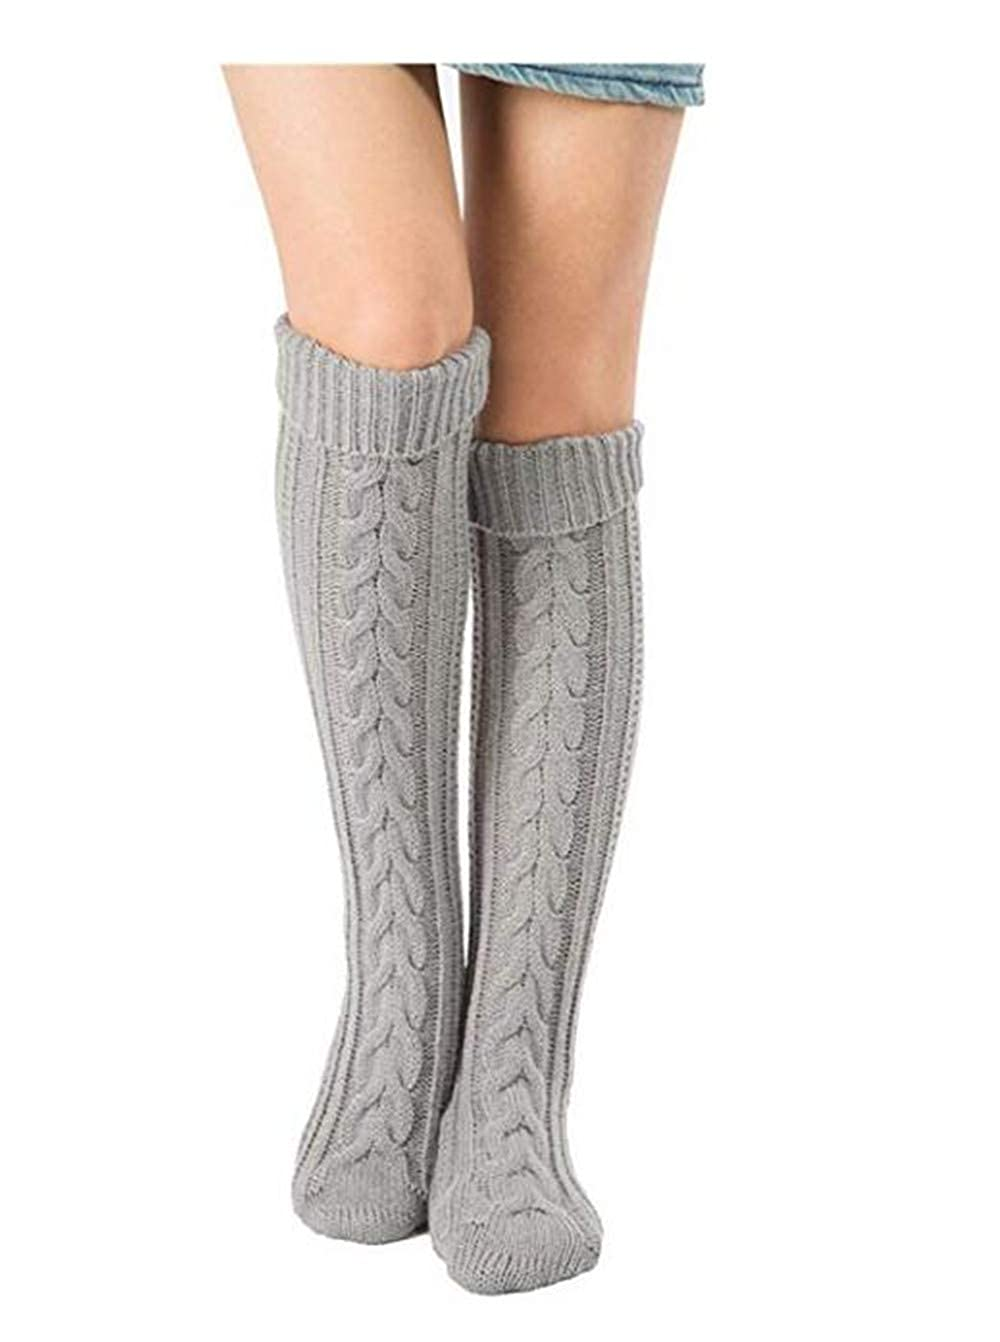 Xugq66 Womens Winter Leg Warmers Knitted Crochet Knee High Boot Socks